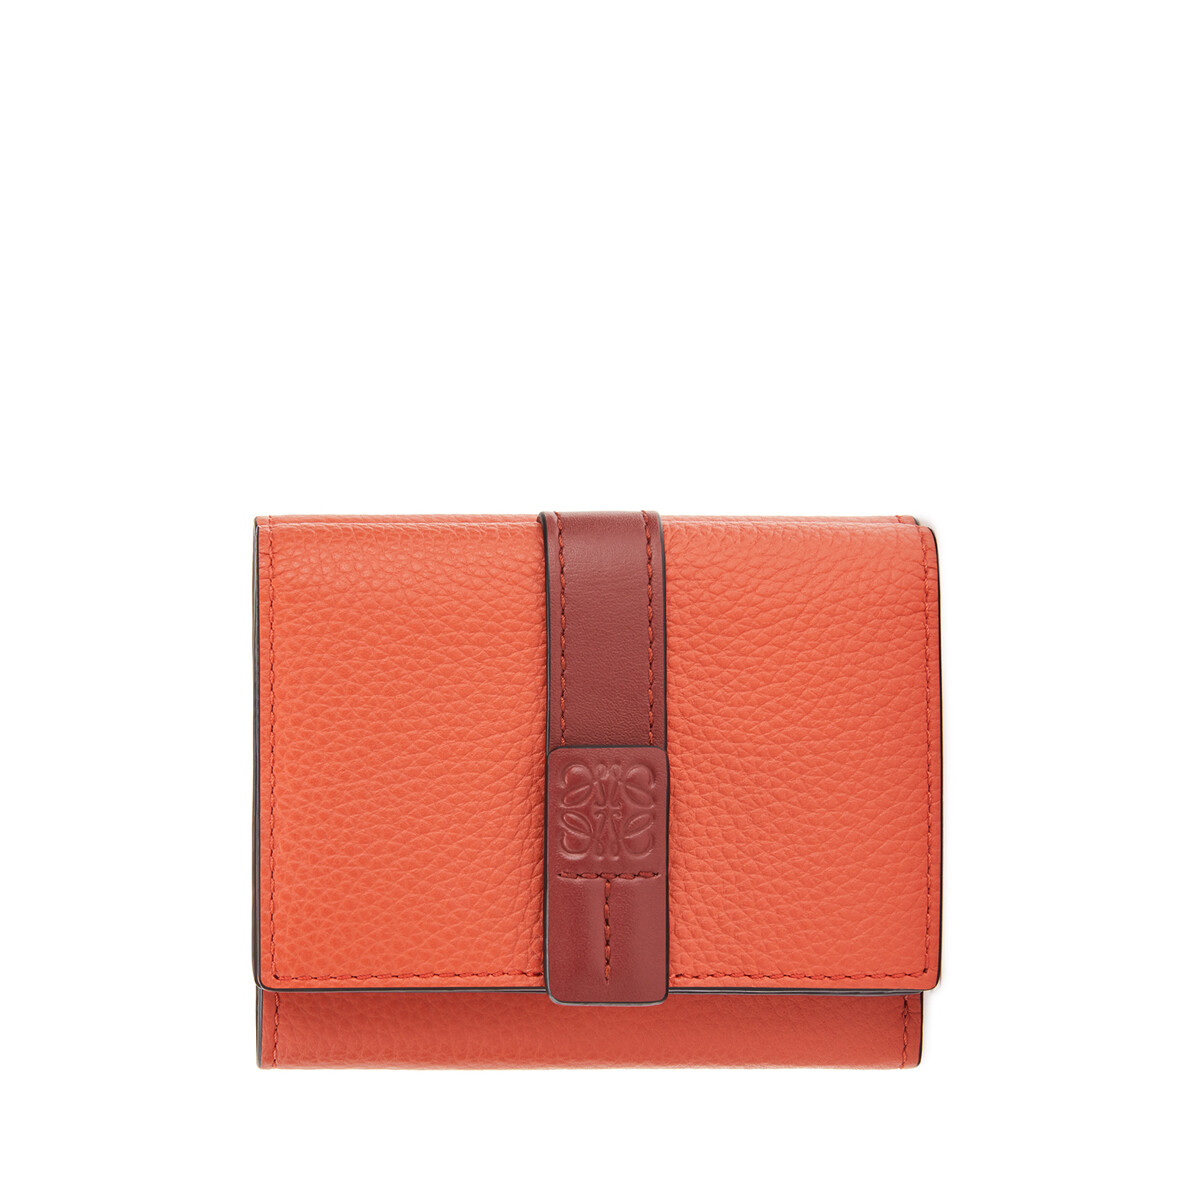 LOEWE Trifold Wallet Coral/Soft Apricot front